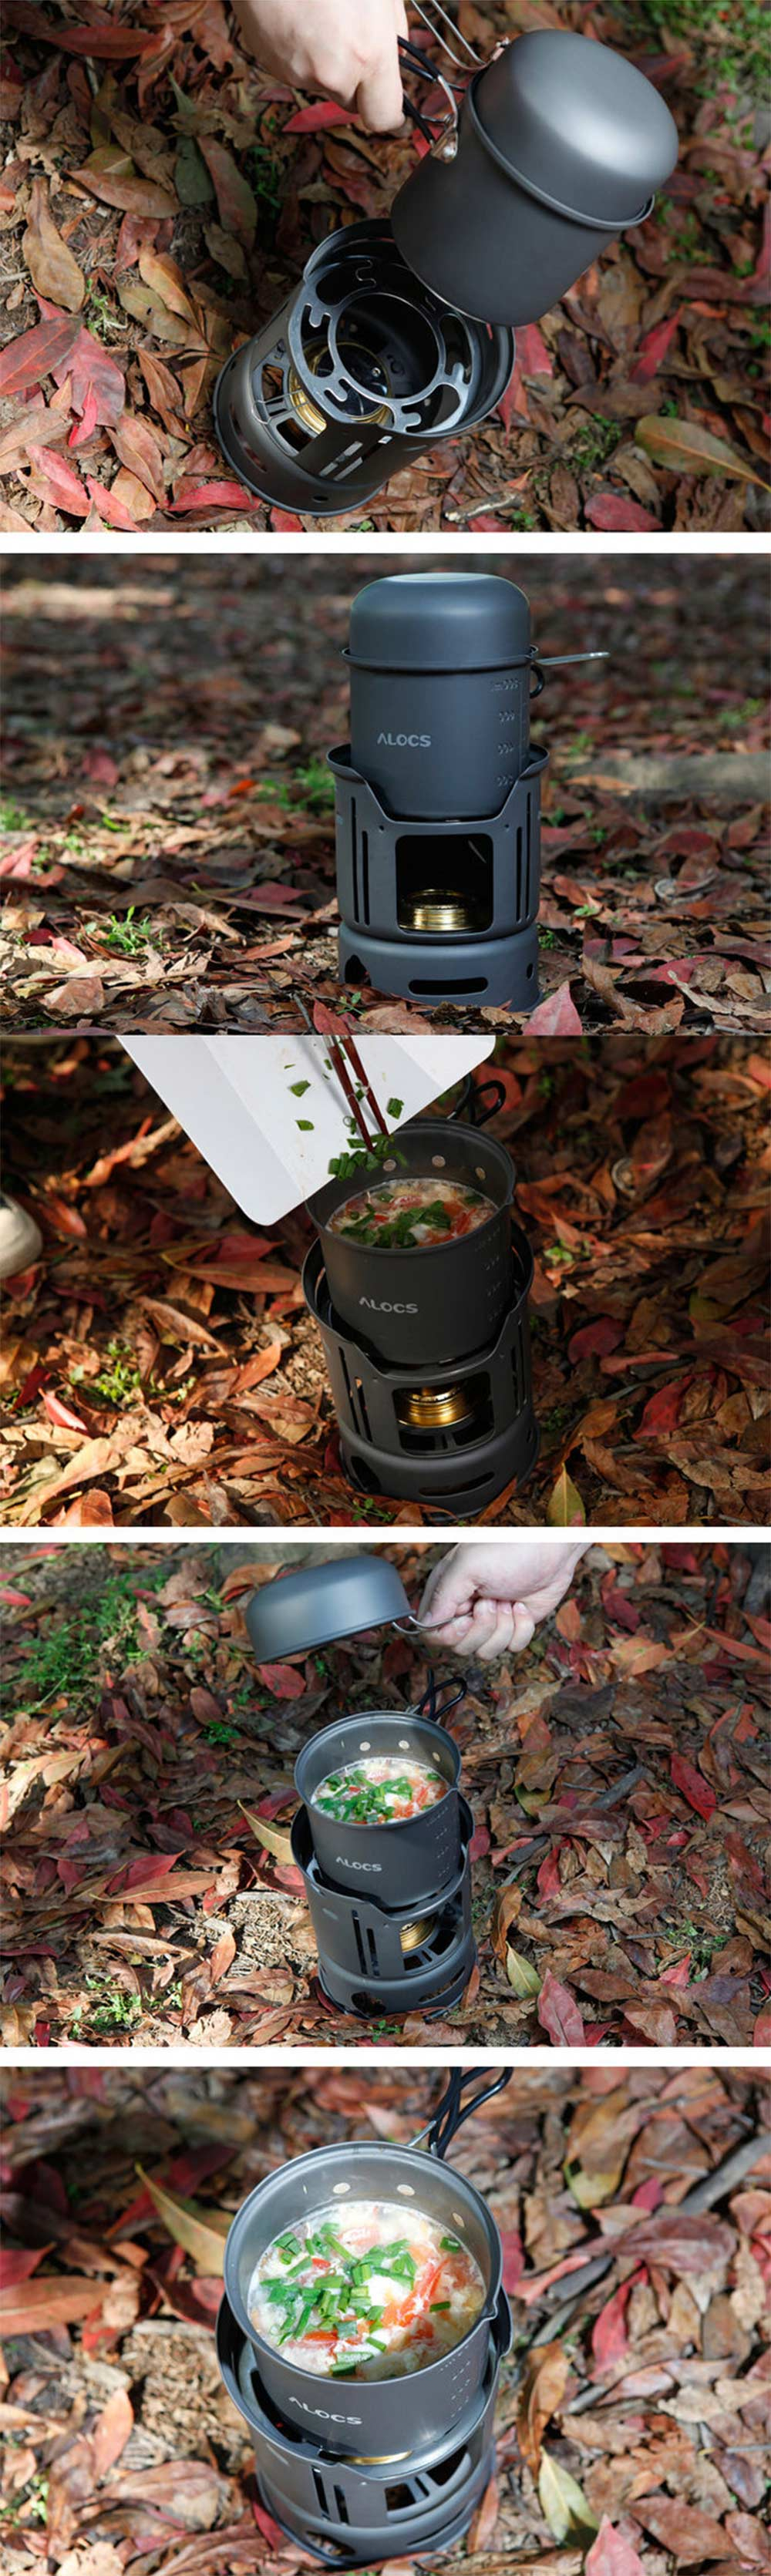 ALOCS CW-C01 7pcs Out of doors Tenting Cooking Set Moveable Range Tenting Cookware Pots Bowl Cooker Range Picnic BBQ Journey 1-2Person HTB1Czknm8USMeJjy1zjq6A0dXXa1